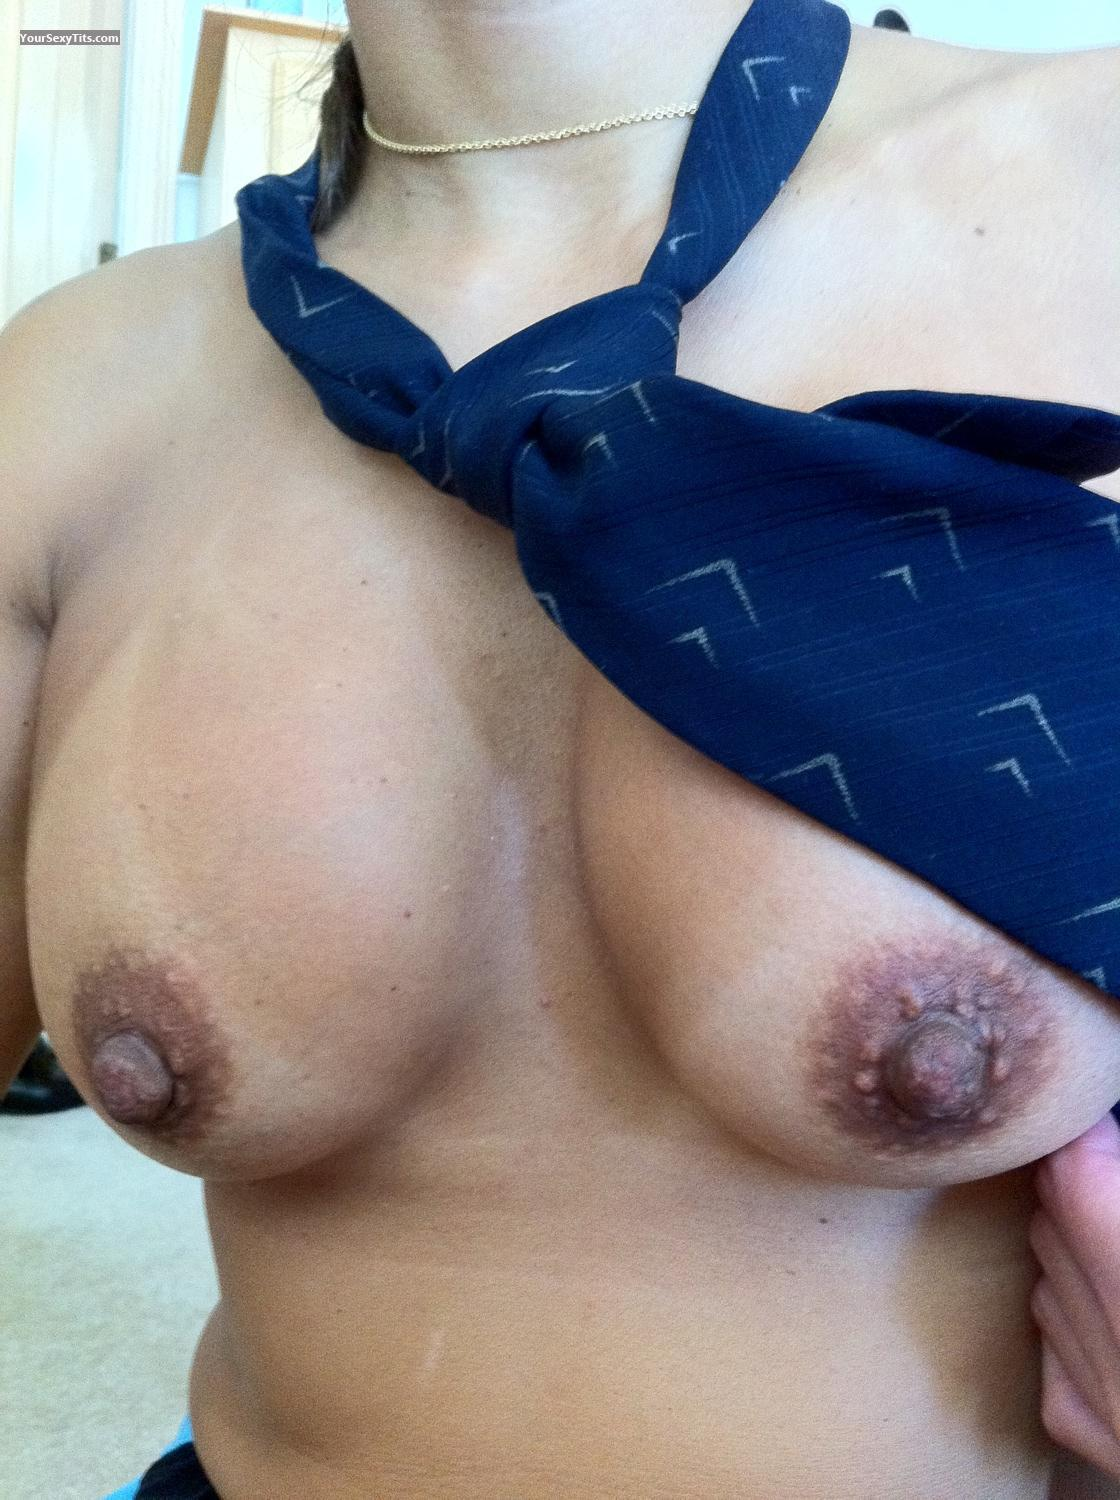 Tit Flash: Medium Tits By IPhone - Very Shybari from United States